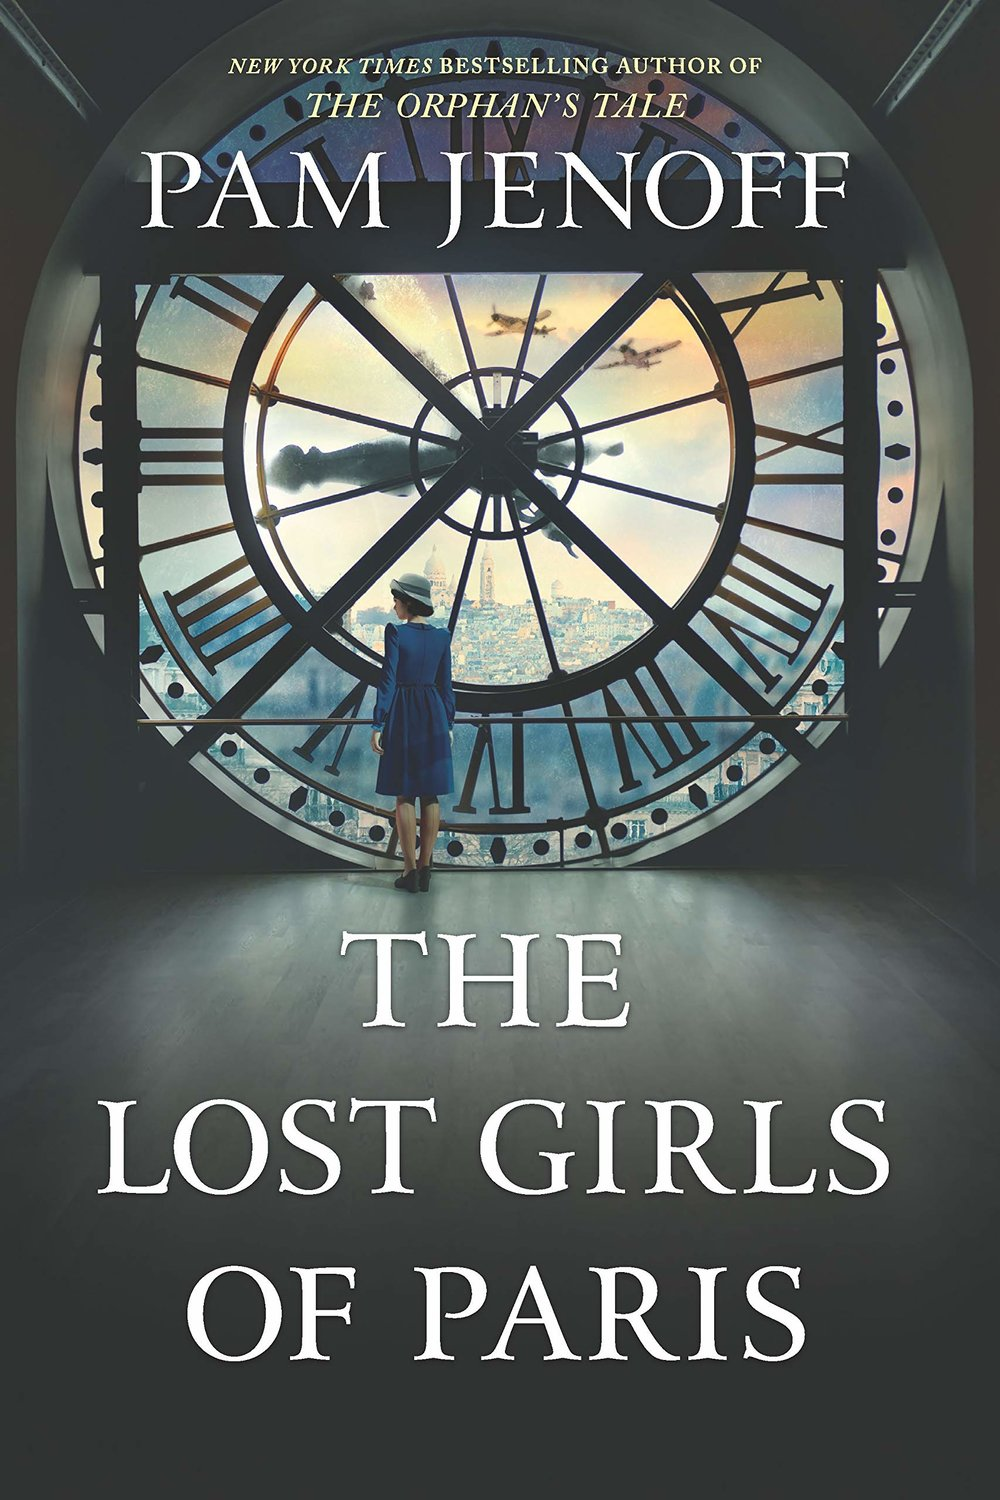 The Lost Girls of Paris - Book Review - Hasty Book List